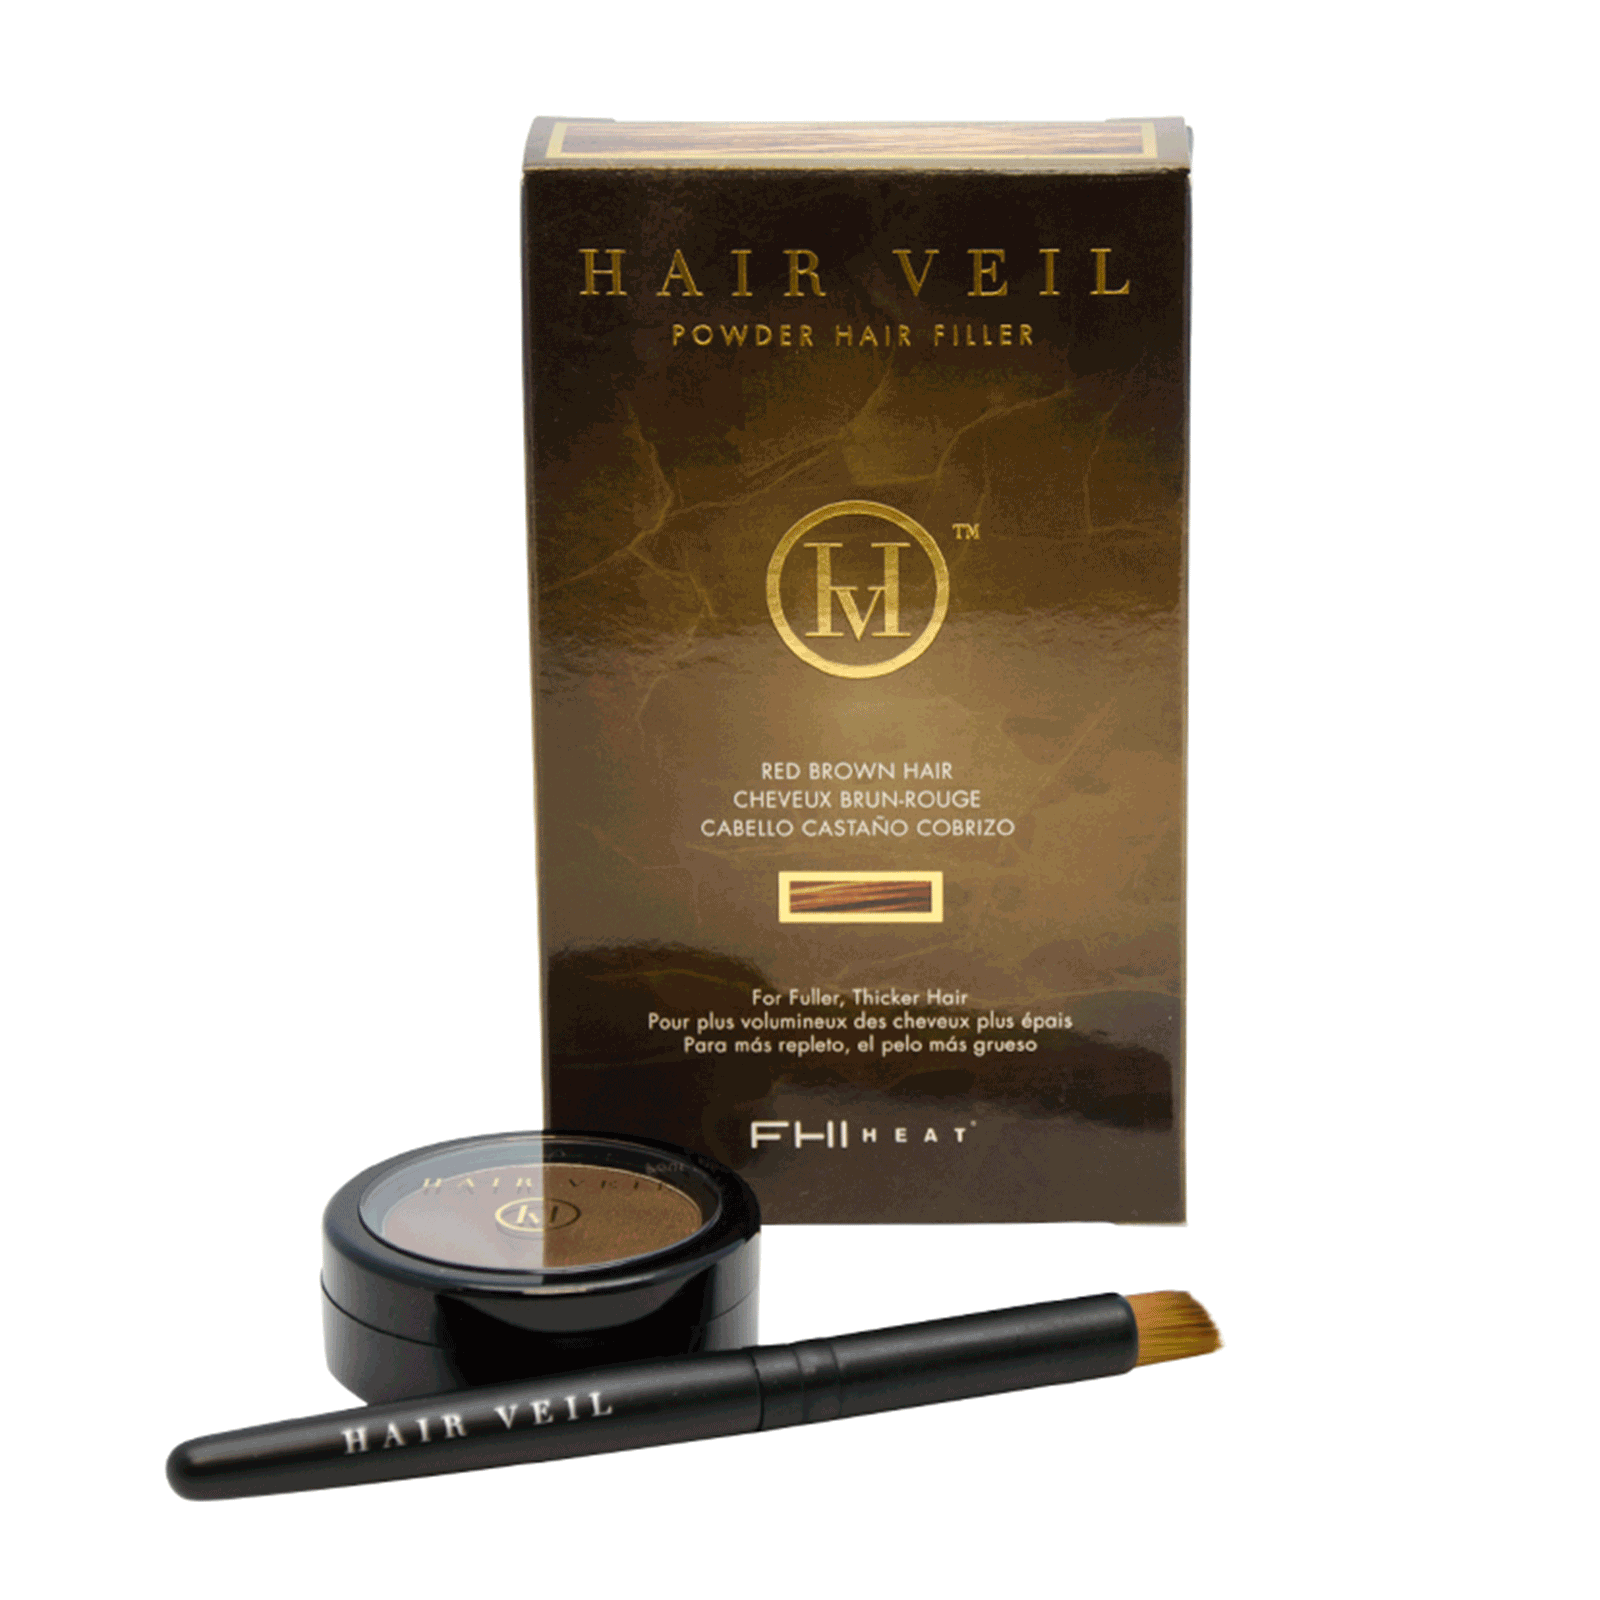 Hair Veil Powder Hair Filler - Red Brown